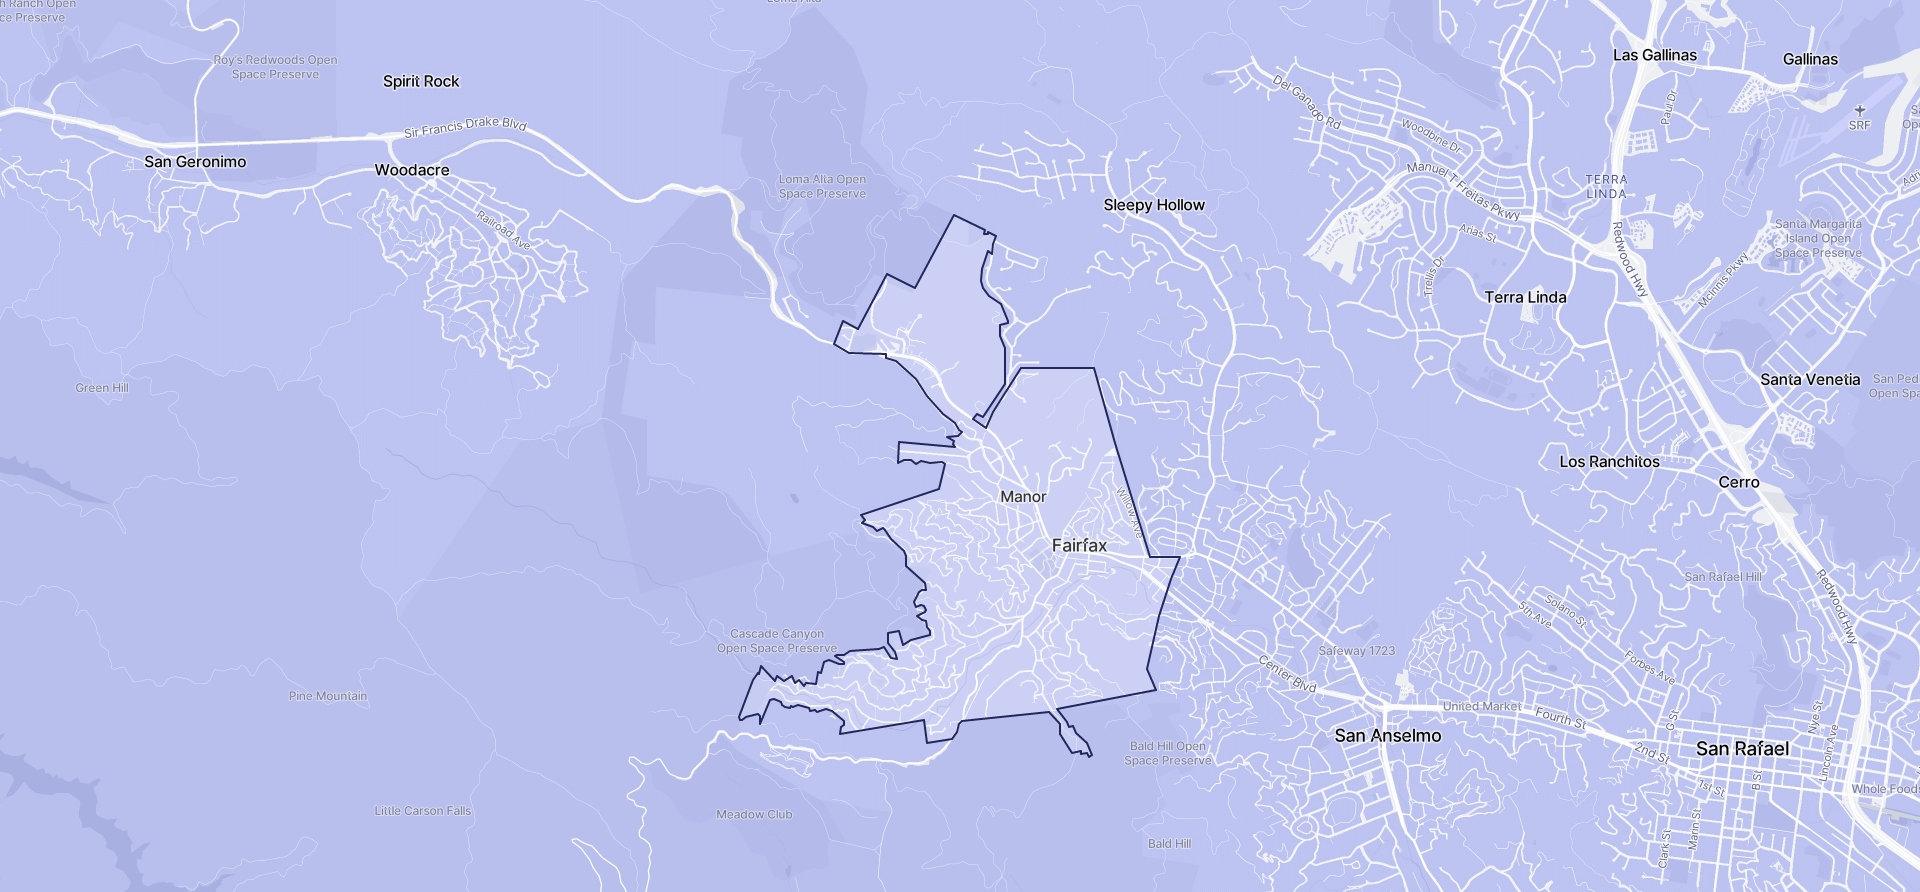 Image of Fairfax boundaries on a map.